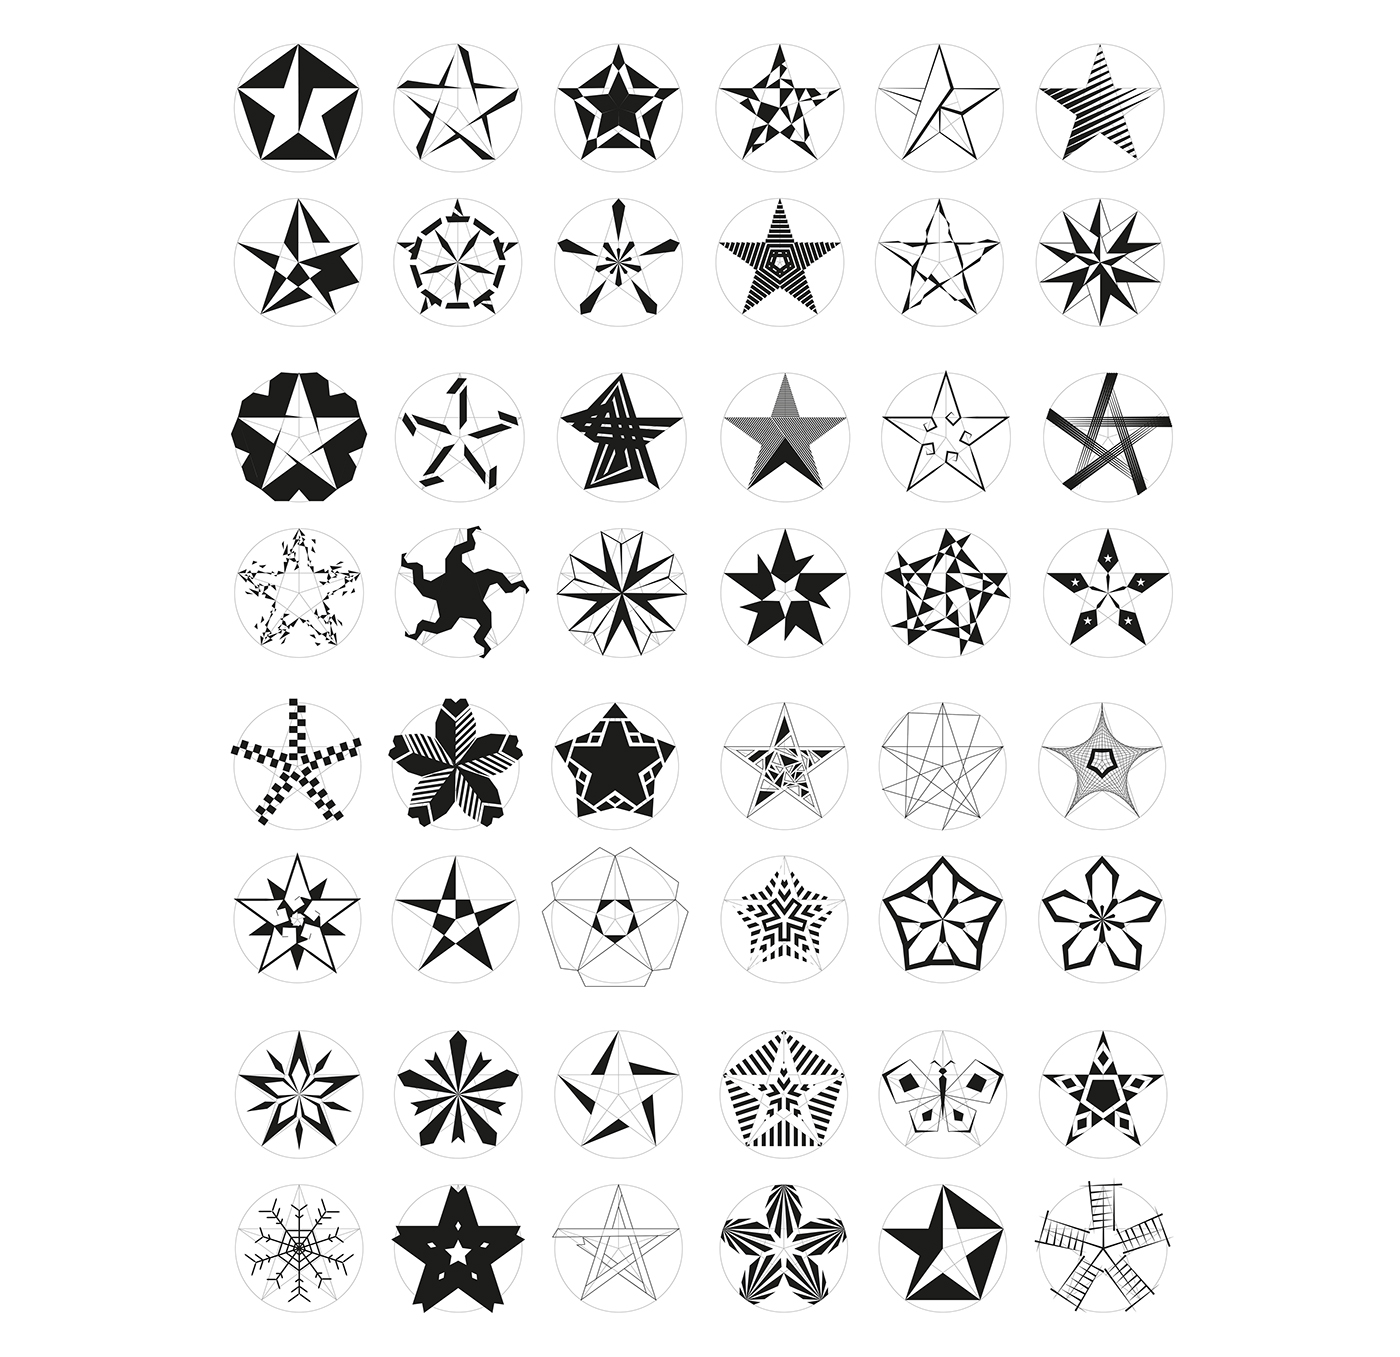 Five Pointed Star Symbol Design On Behance Ideas And Designs